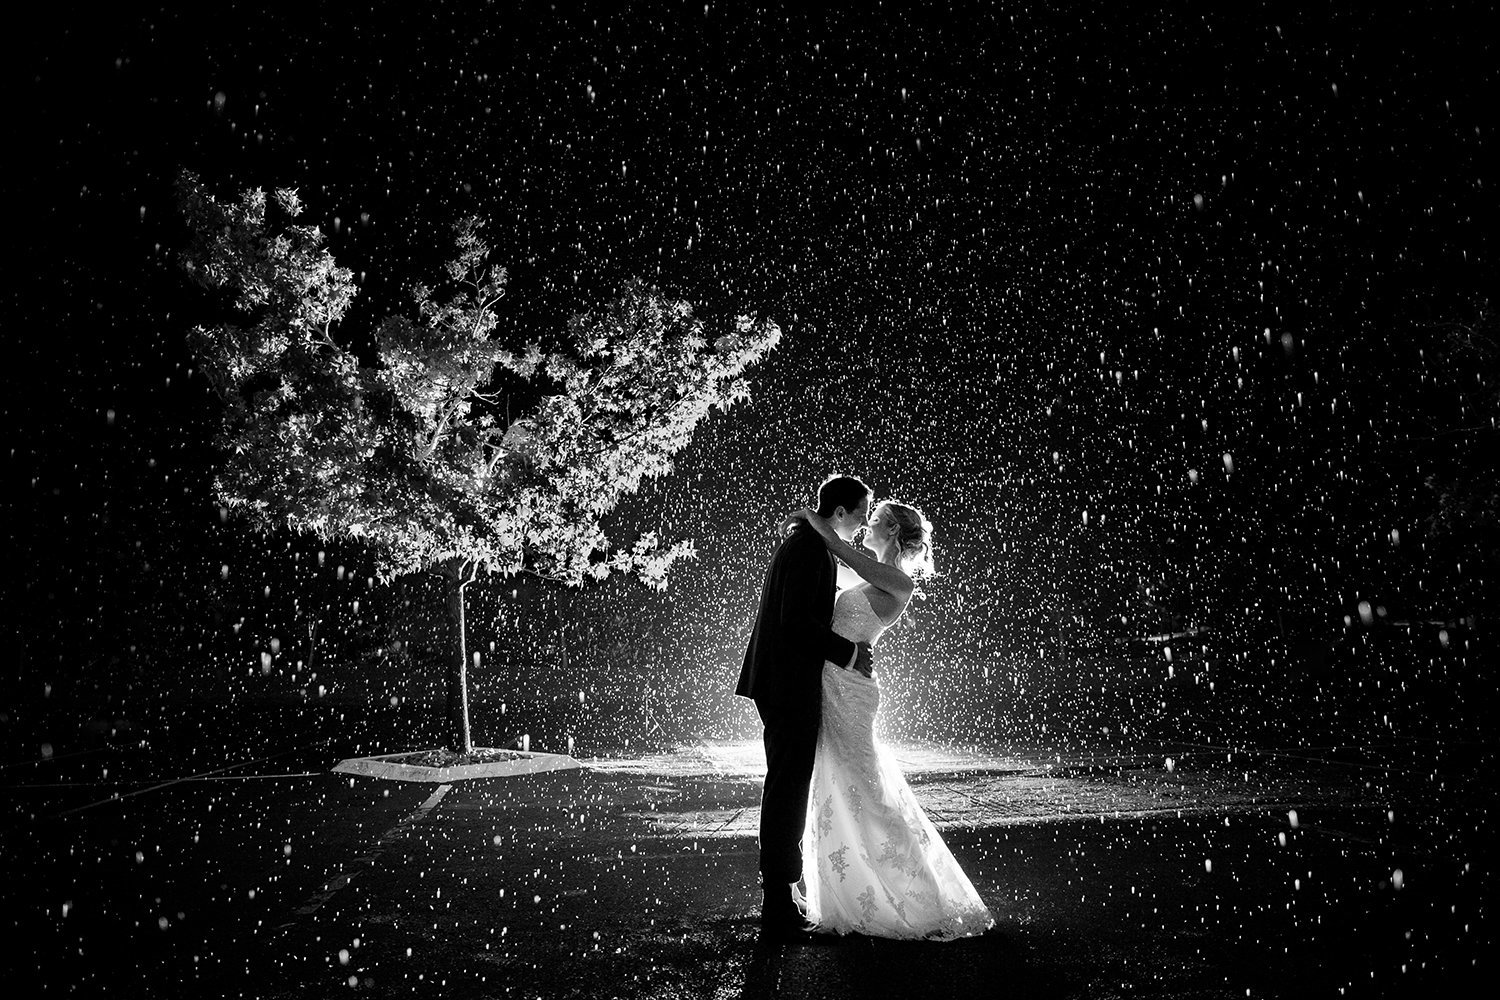 Karl Strauss wedding photos gorgeous rain